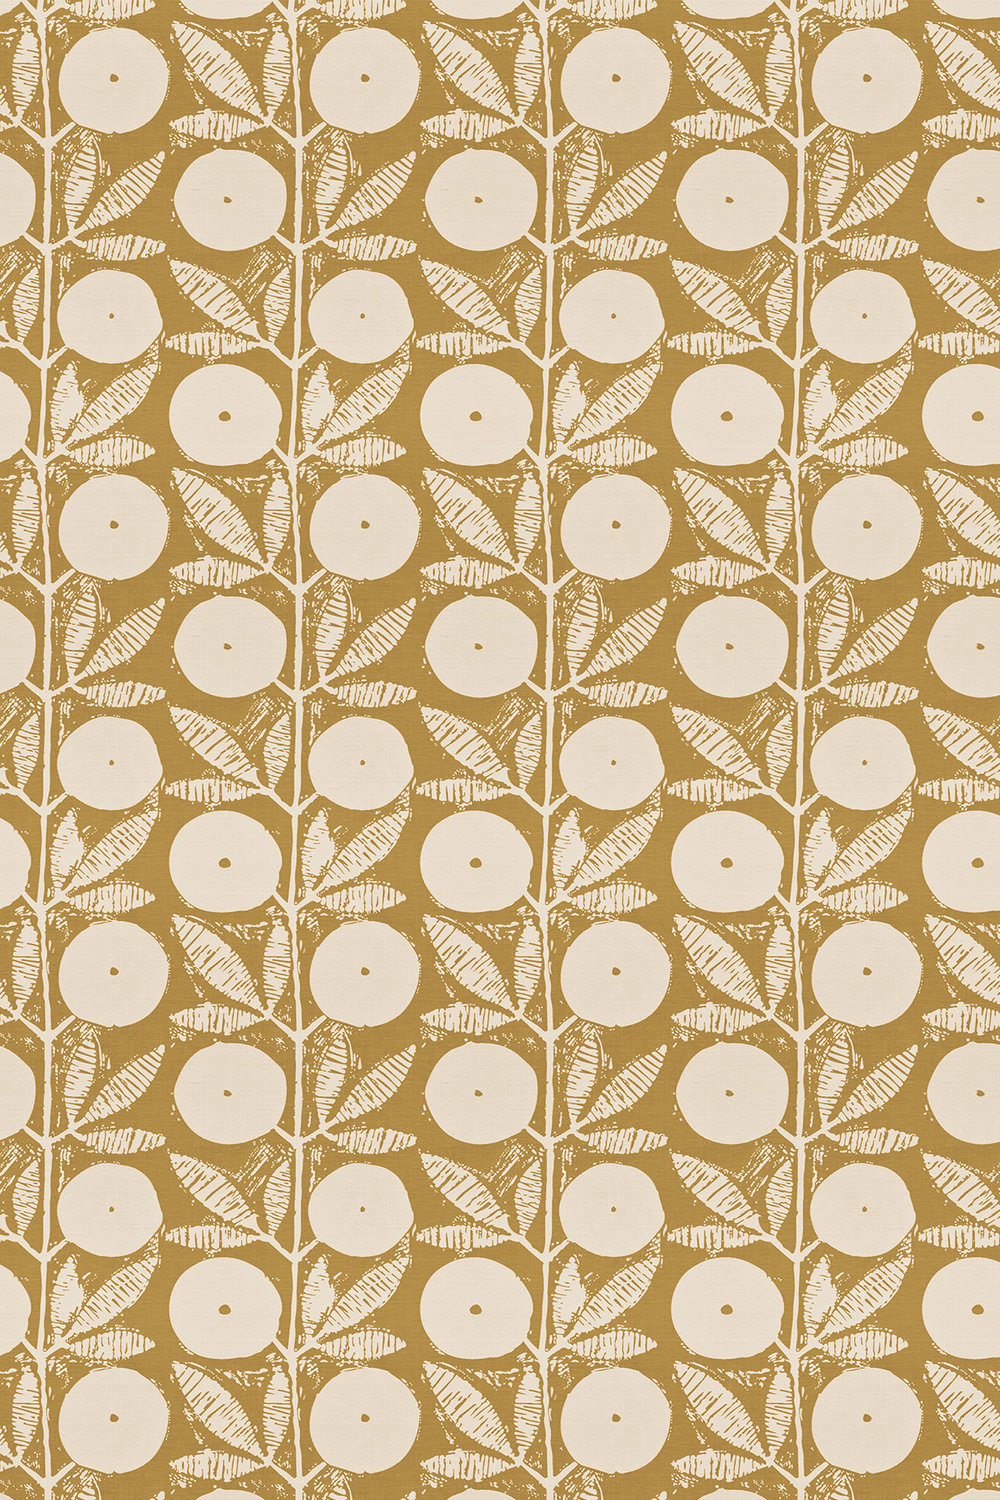 Somero Weave Fabric - Sand and Pumice - by Scion